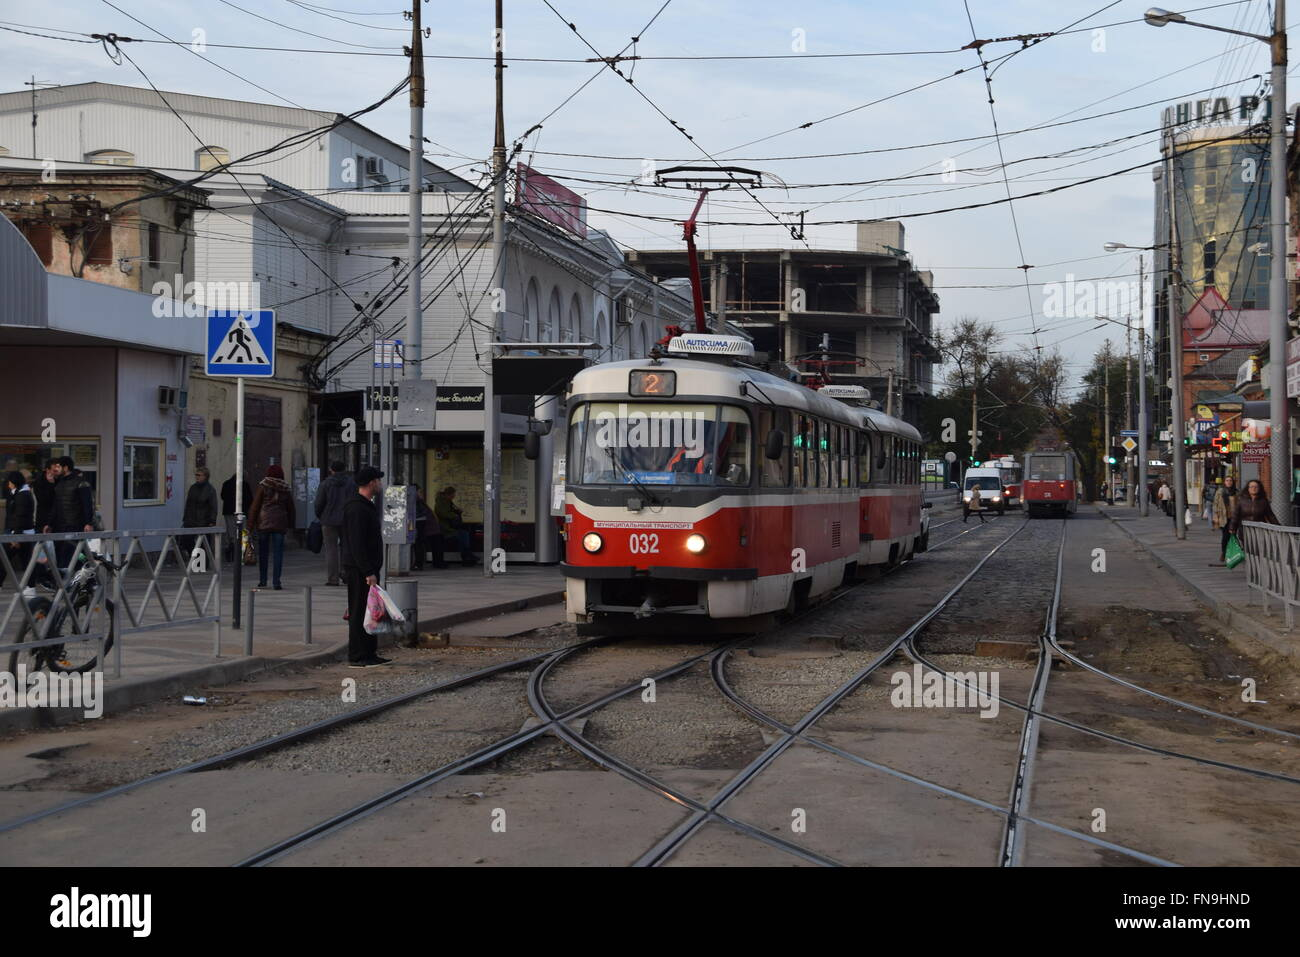 Krasnodar Tramway Central Streets Mixed Running Routes Stock Photo Alamy